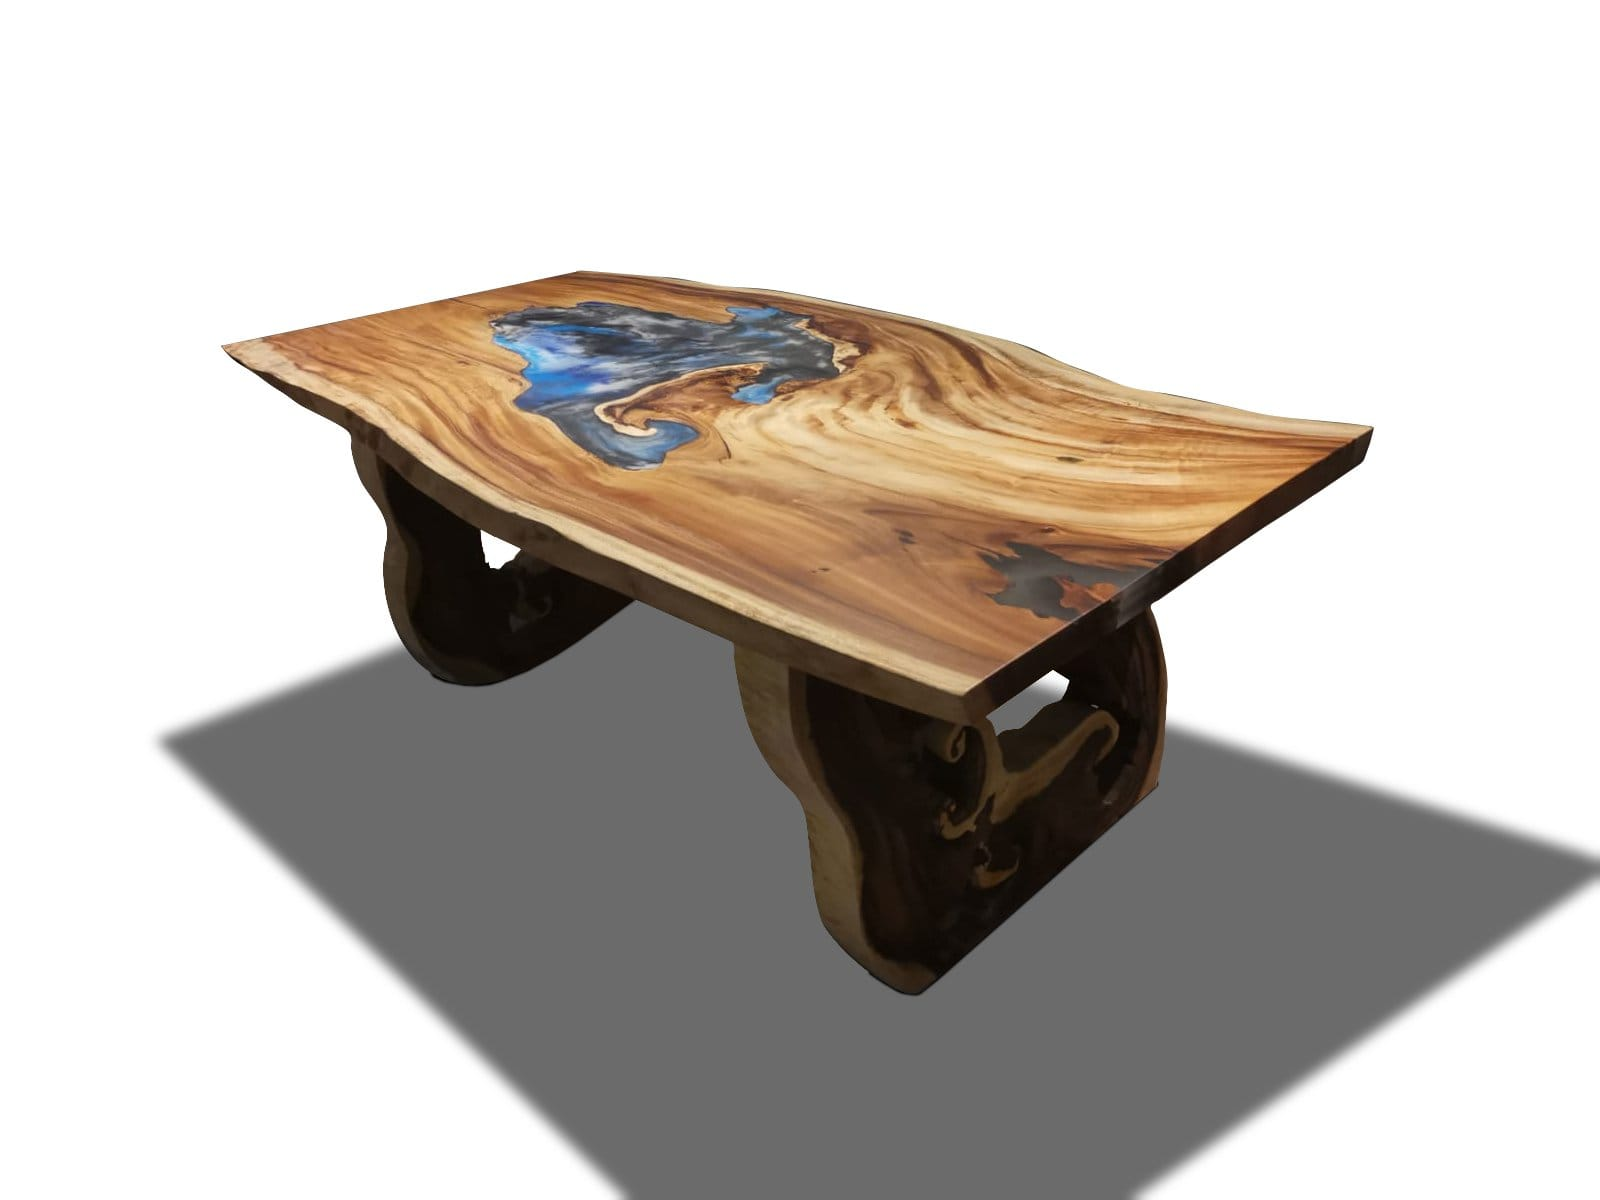 Acacia Wood Live Edge Dining Table with Epoxy Resin River